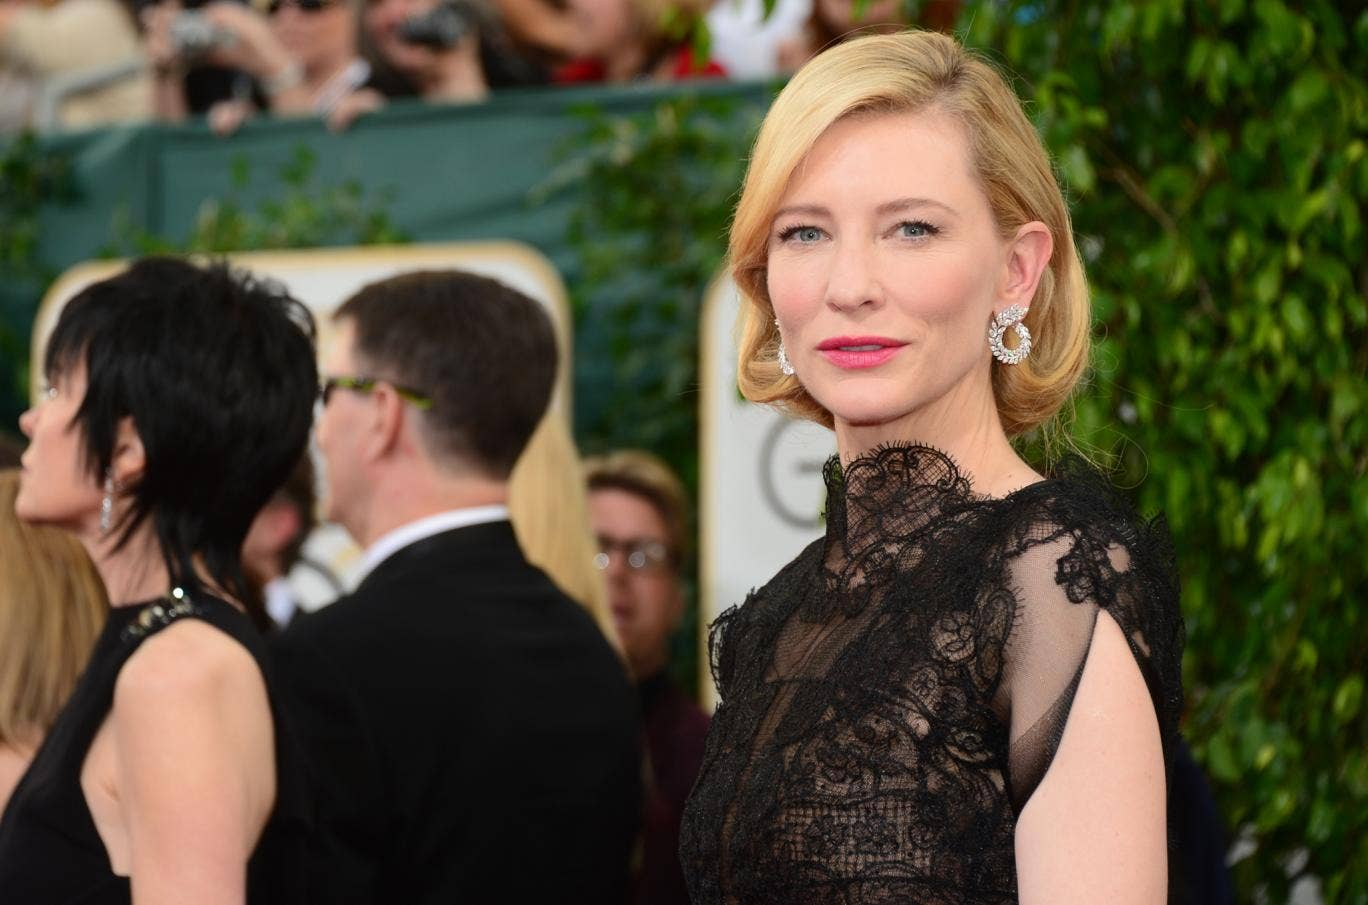 Cate Blanchett on the red carpet at the 71st Golden Globe Awards